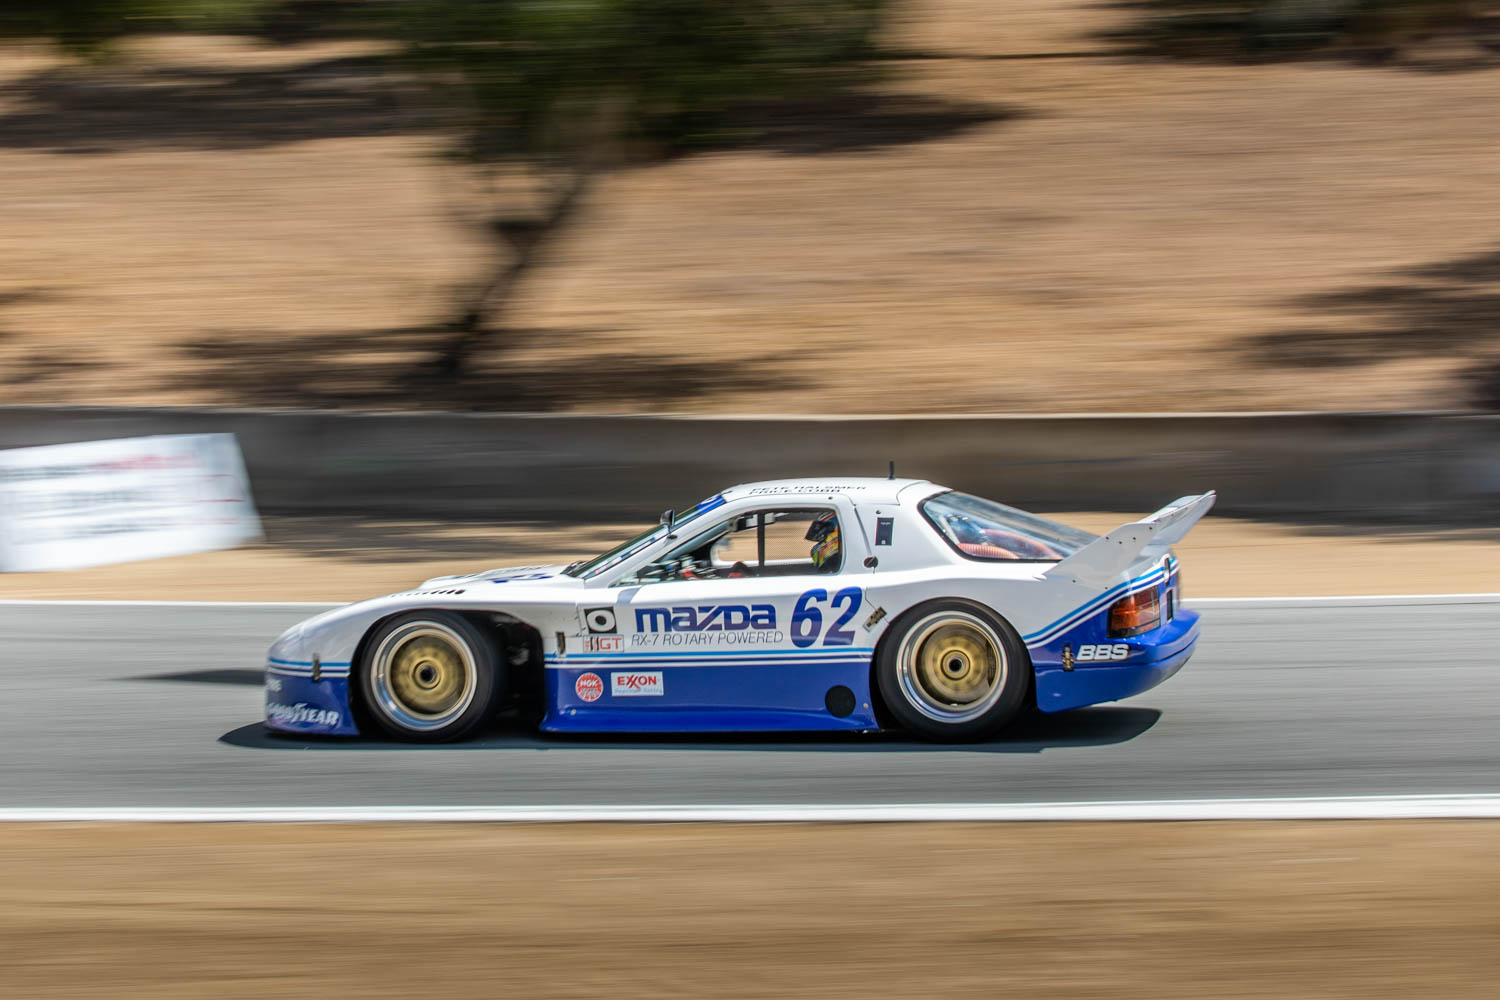 1991 Mazda RX-7 driven by Joel Miller